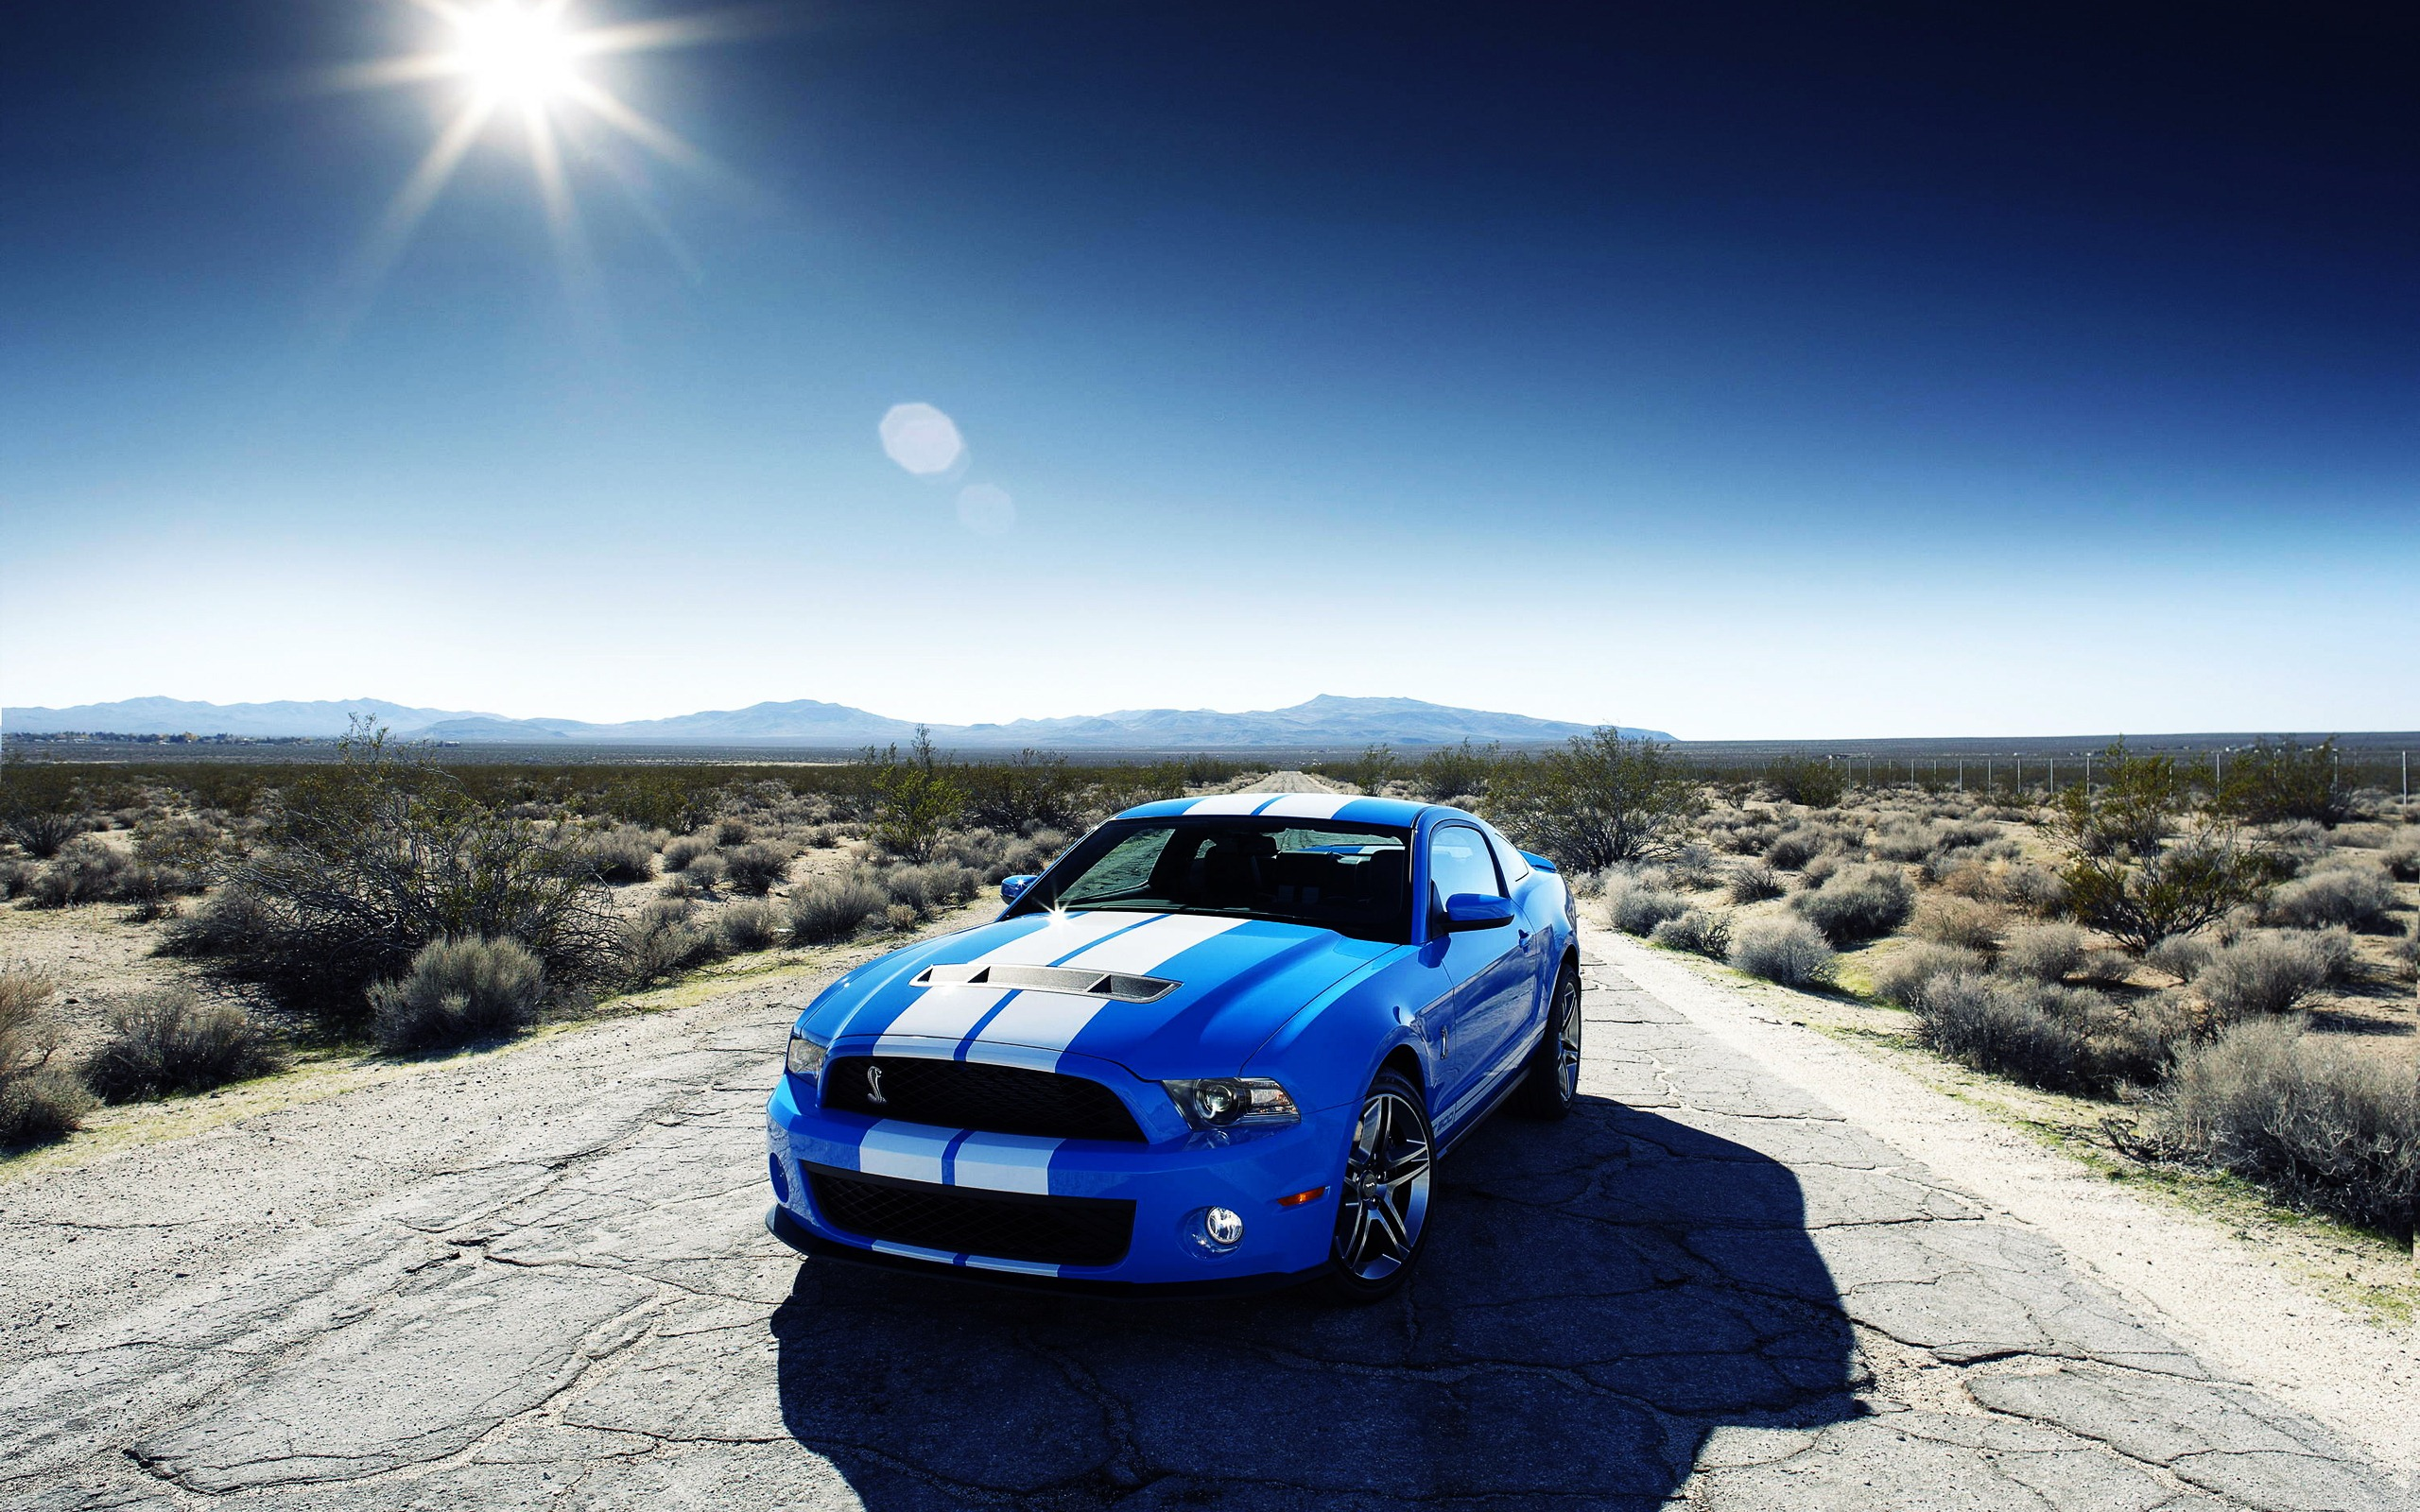 For great deals on Ford Mustang parts and fan souvenirs check out 2560x1600